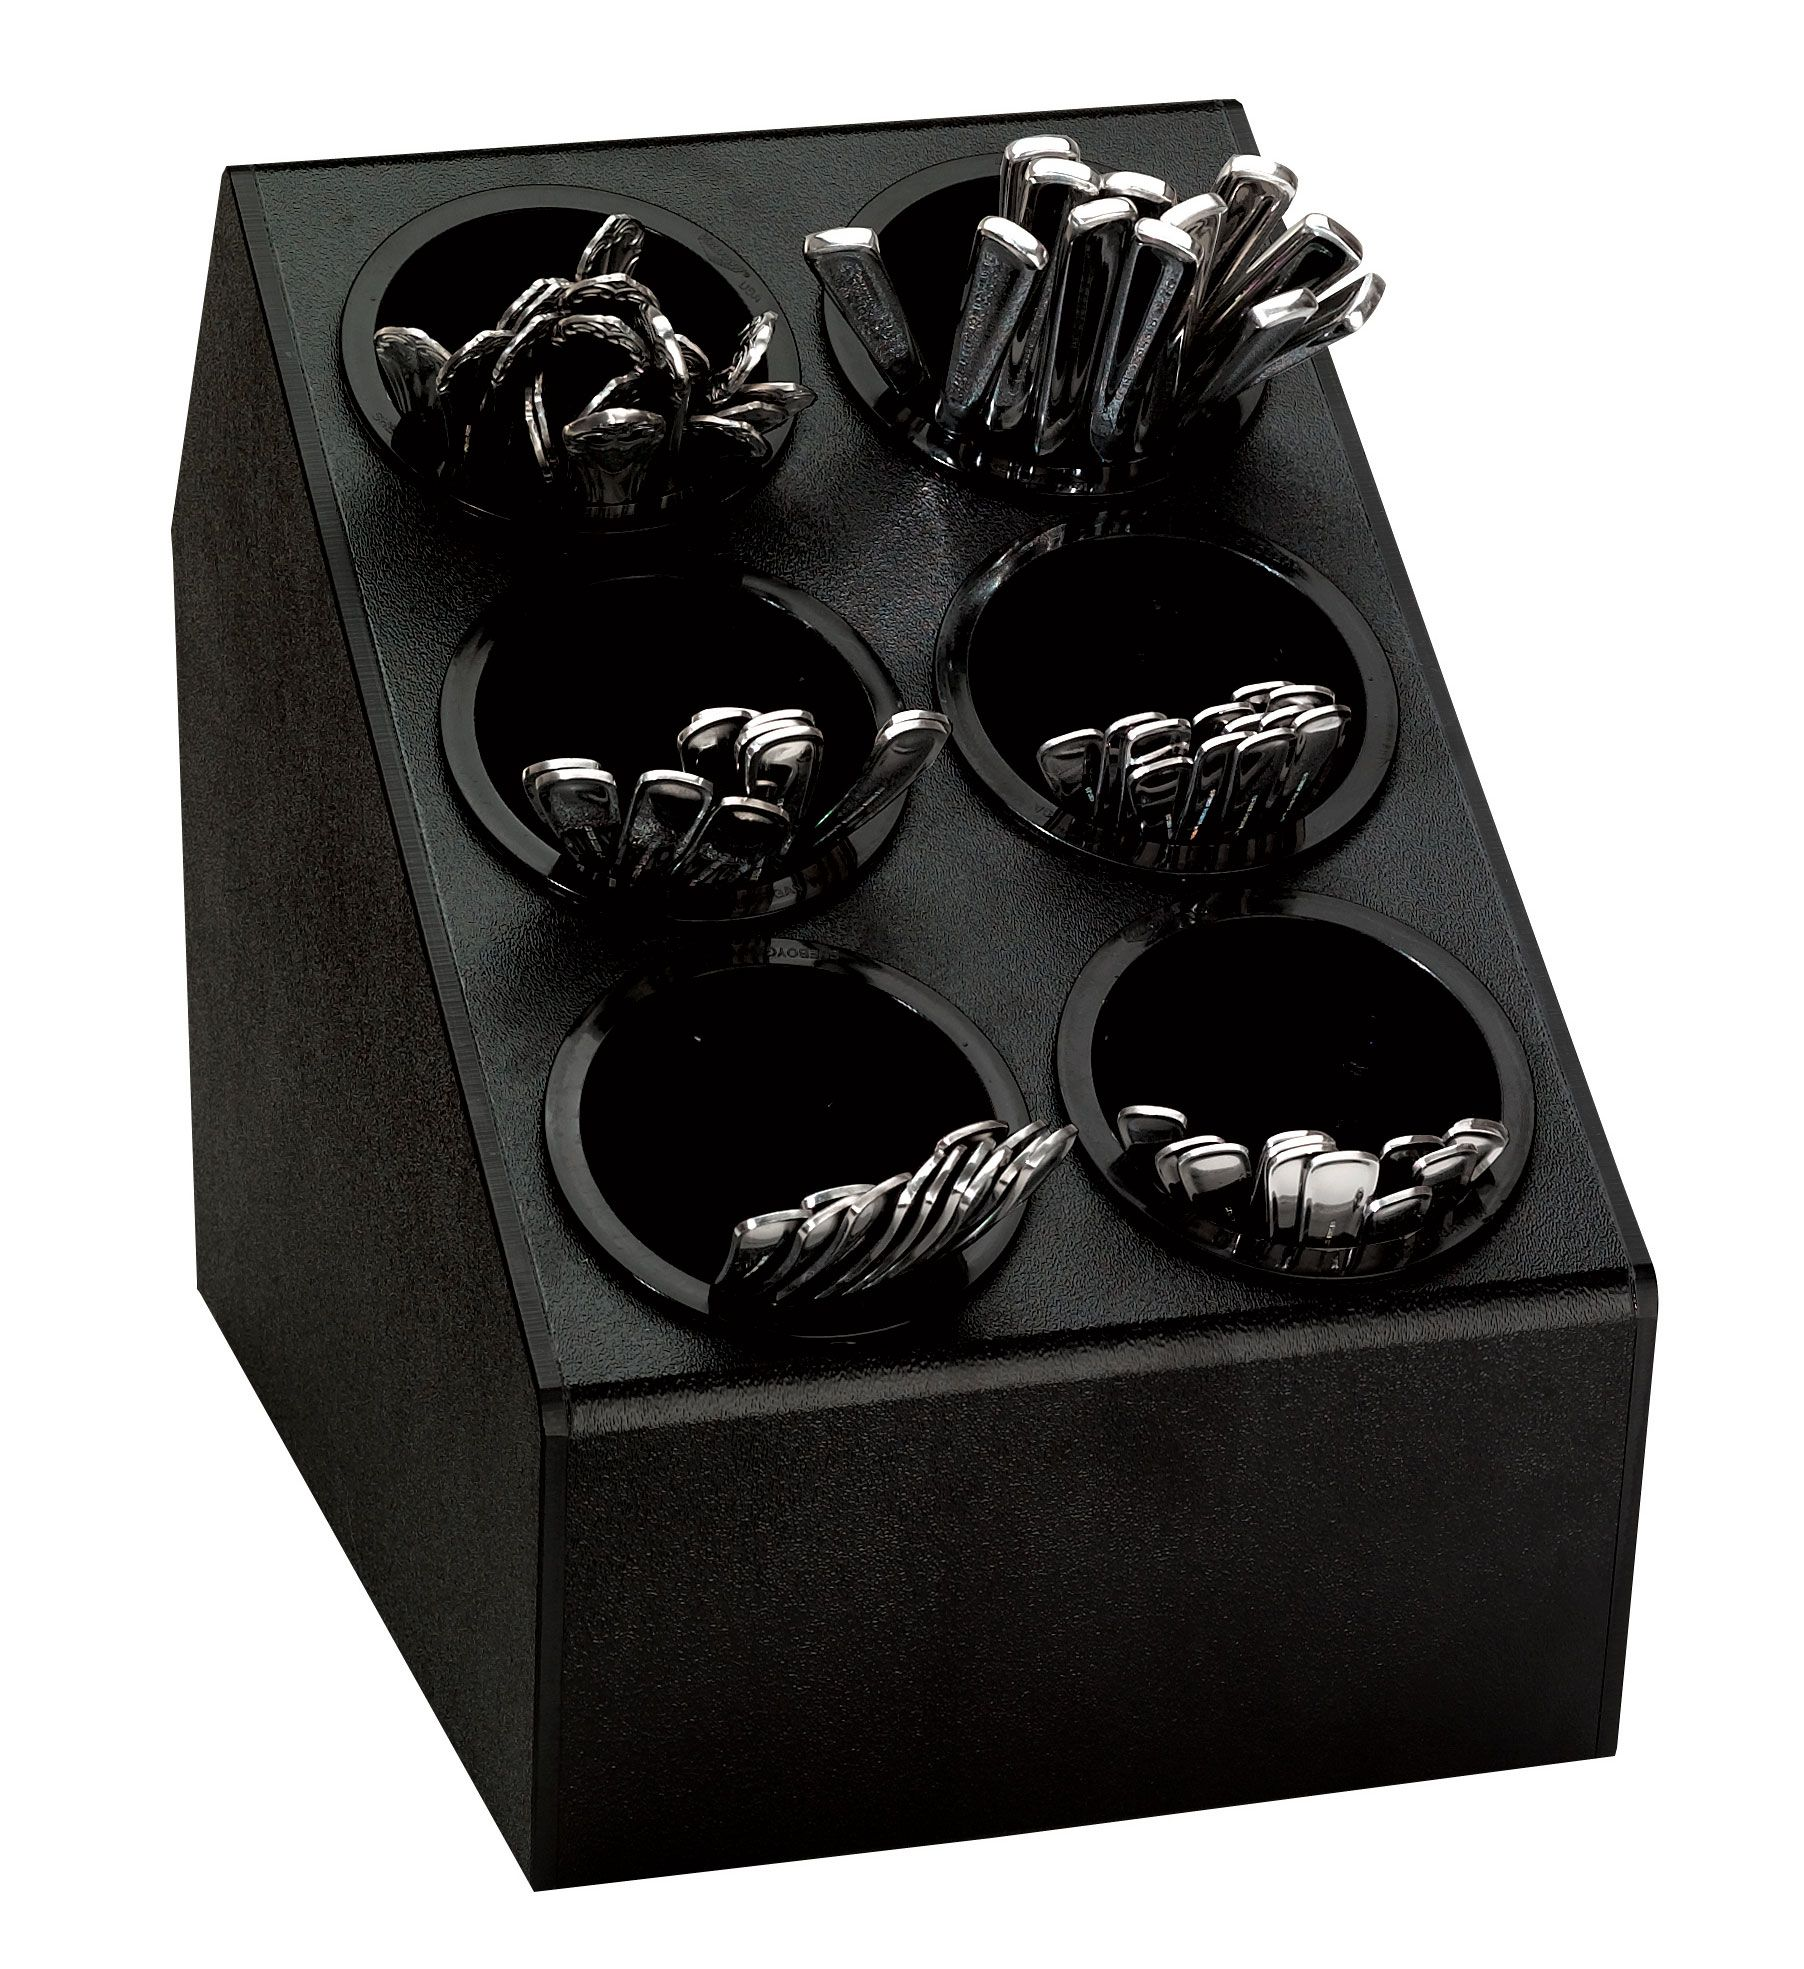 Tiered Plastic Silverware Holder 6 Bins Black In 2020 Silverware Organization Plastic Silverware Utensil Organization